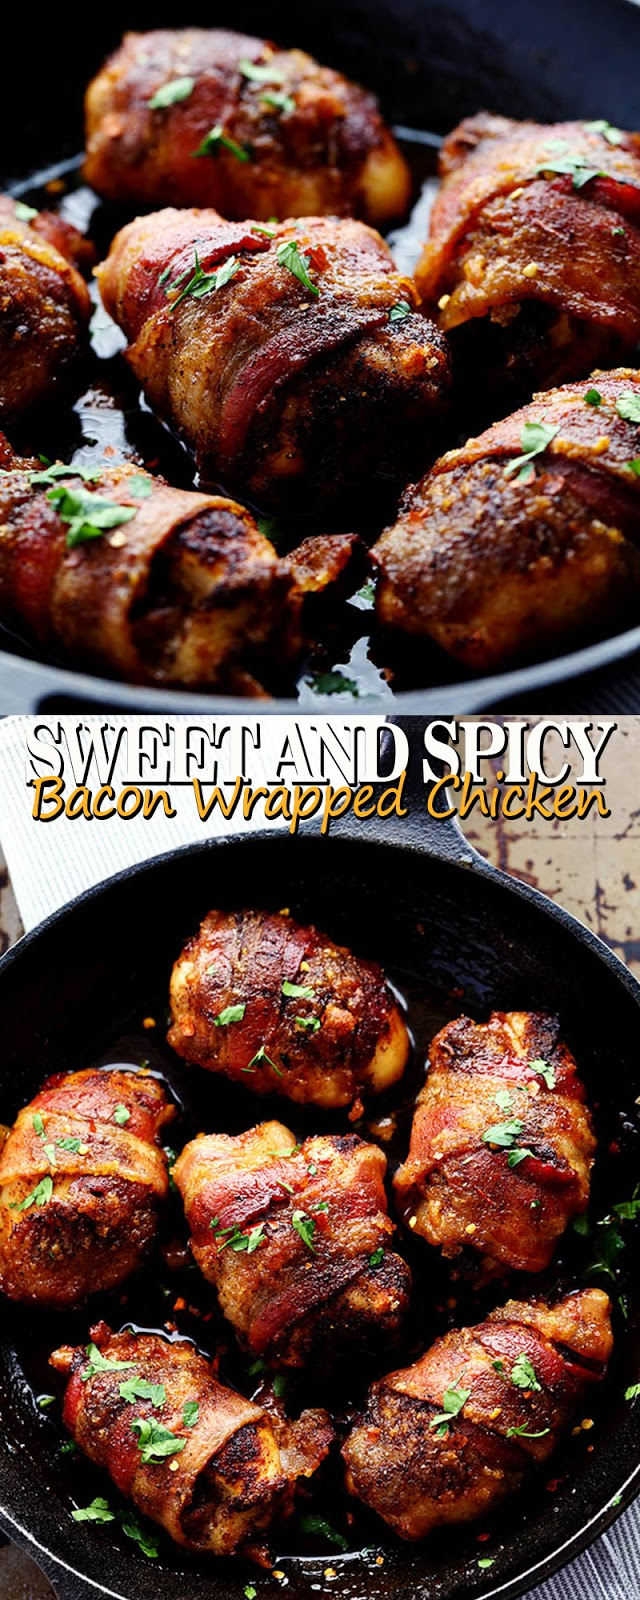 SWEET AND SPICY BACON WRAPPED CHICKEN